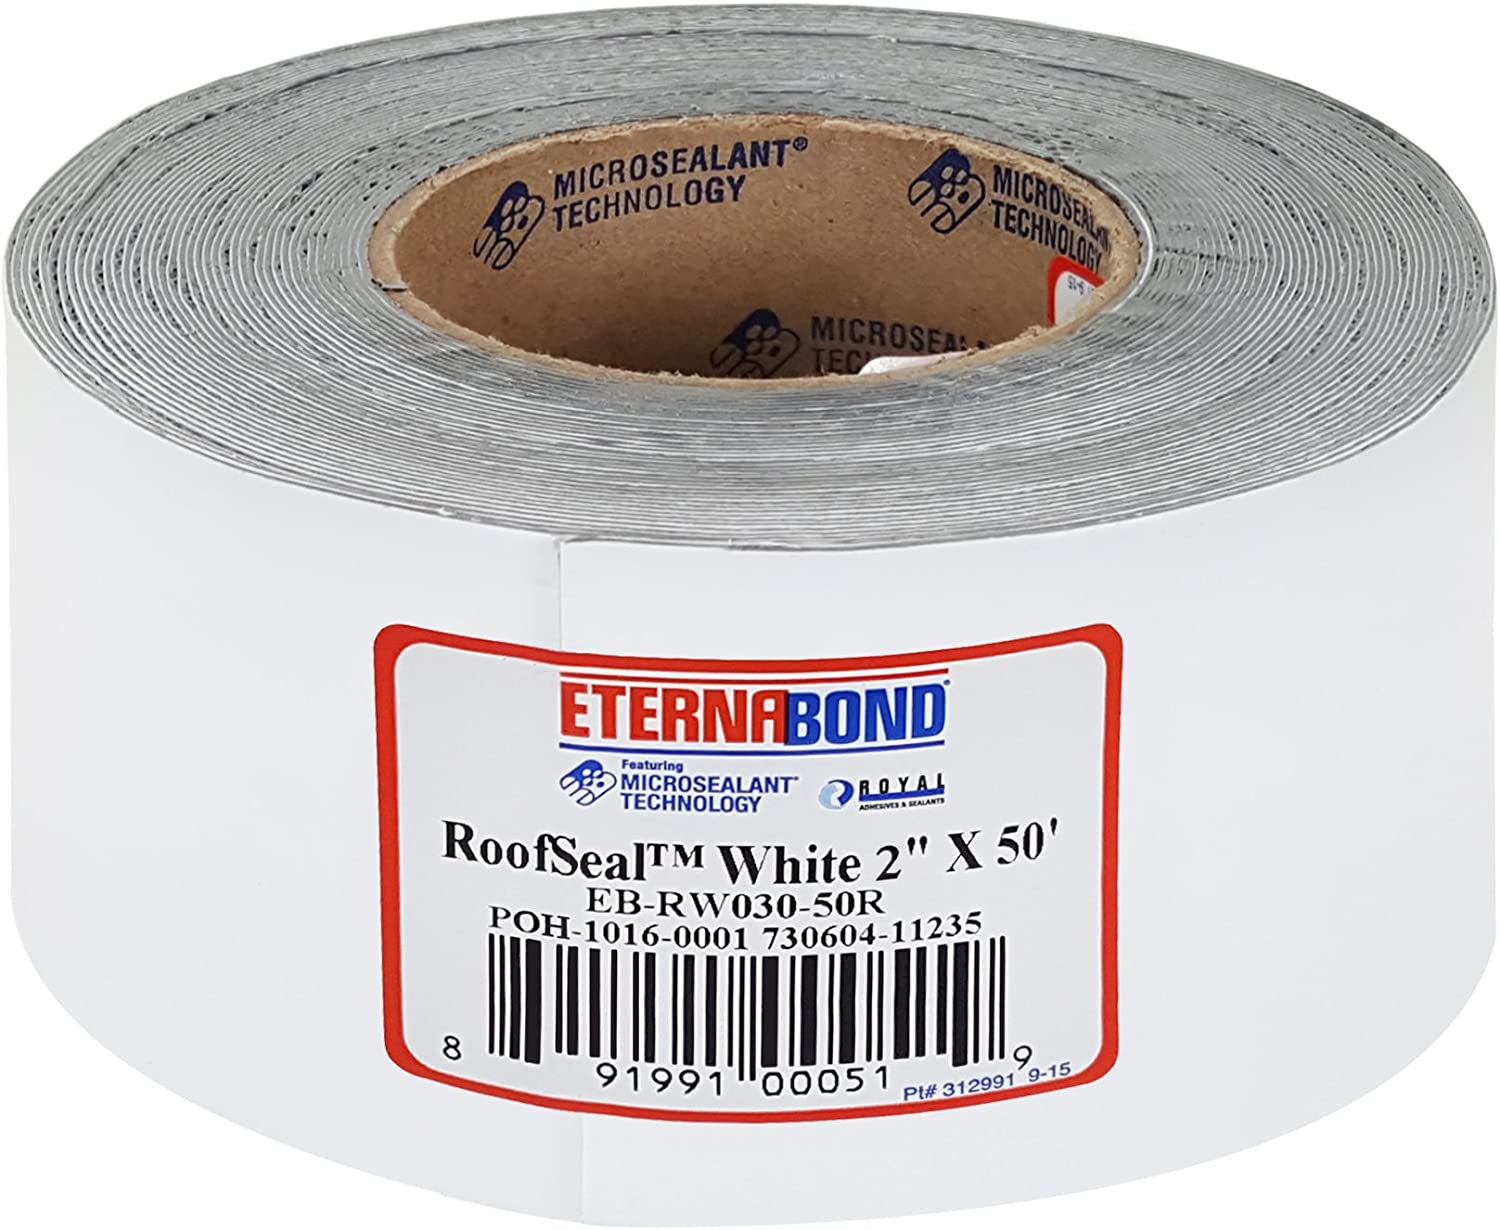 "EternaBond 2"" X 50 RV Rubber Roof Seal Repair White"